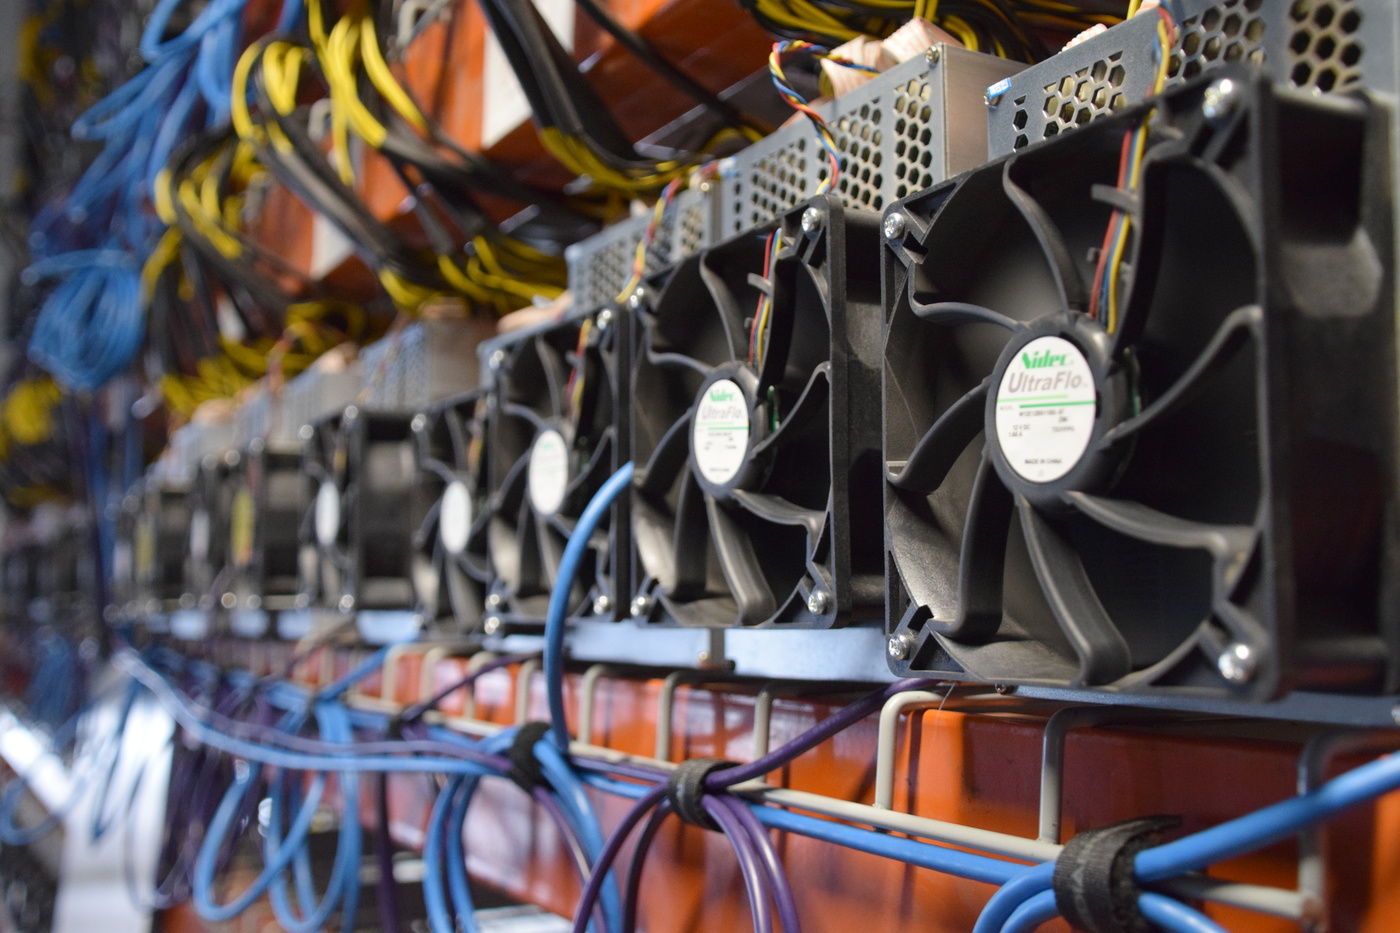 Plattsburgh, NY bans cryptocurrency mining, first United States city to block practice